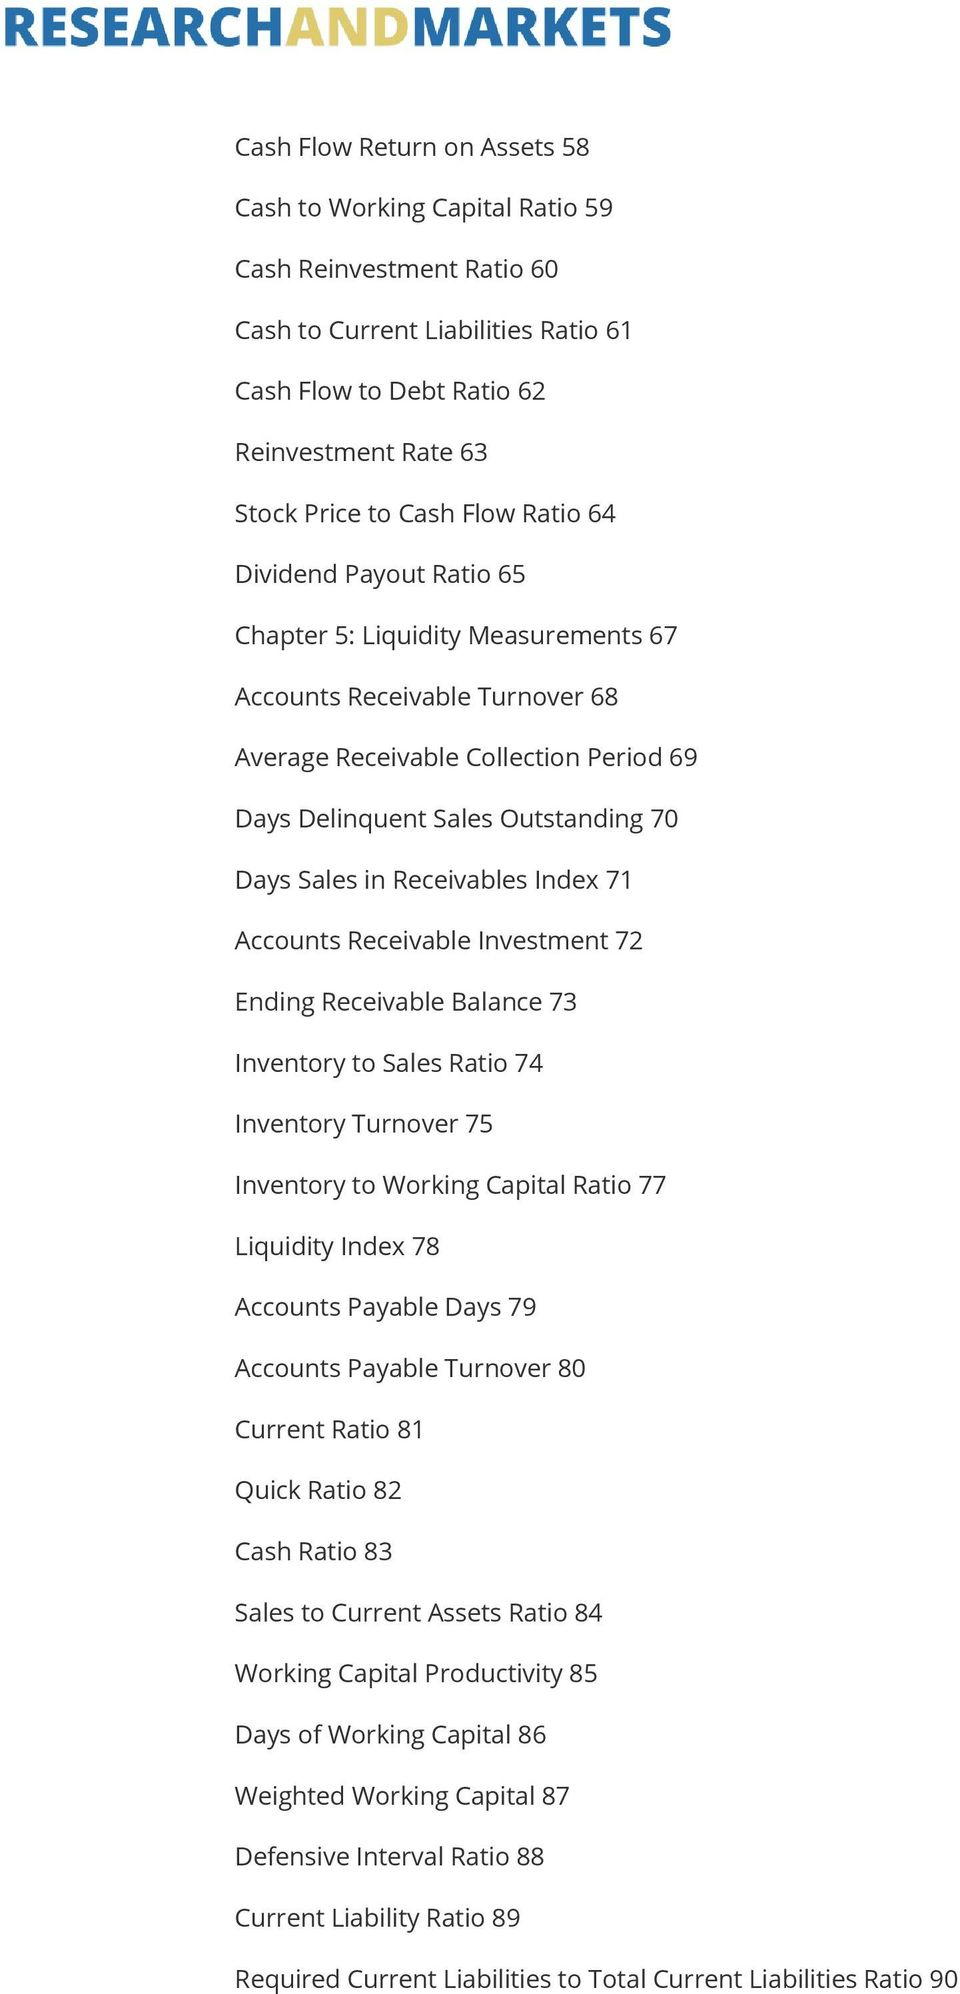 Receivables Index 71 Accounts Receivable Investment 72 Ending Receivable Balance 73 Inventory to Sales Ratio 74 Inventory Turnover 75 Inventory to Working Capital Ratio 77 Liquidity Index 78 Accounts